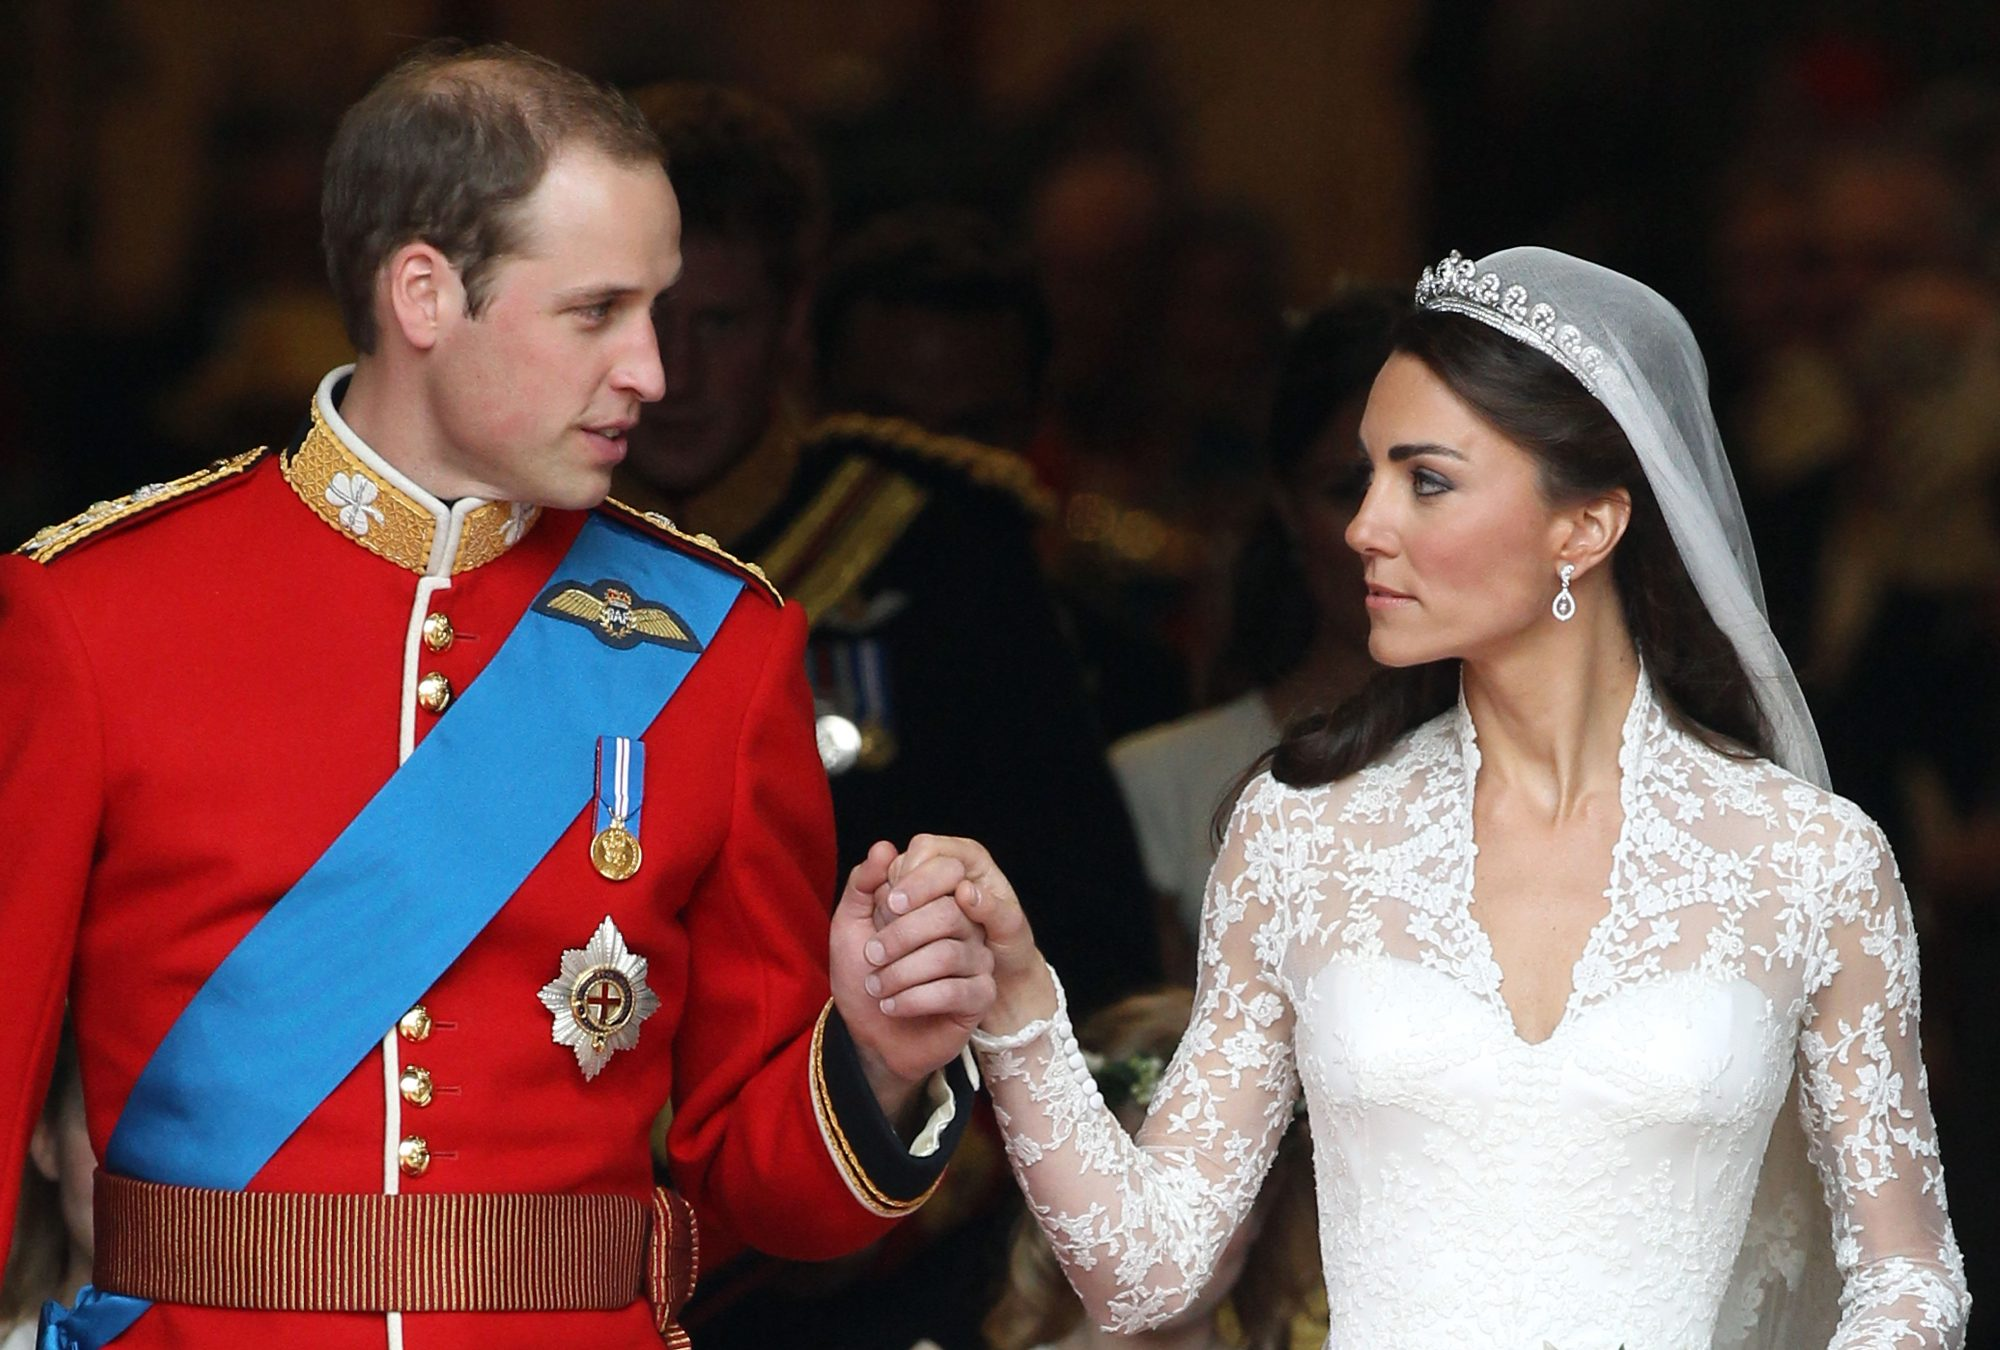 Prince William and Kate Middleton The One